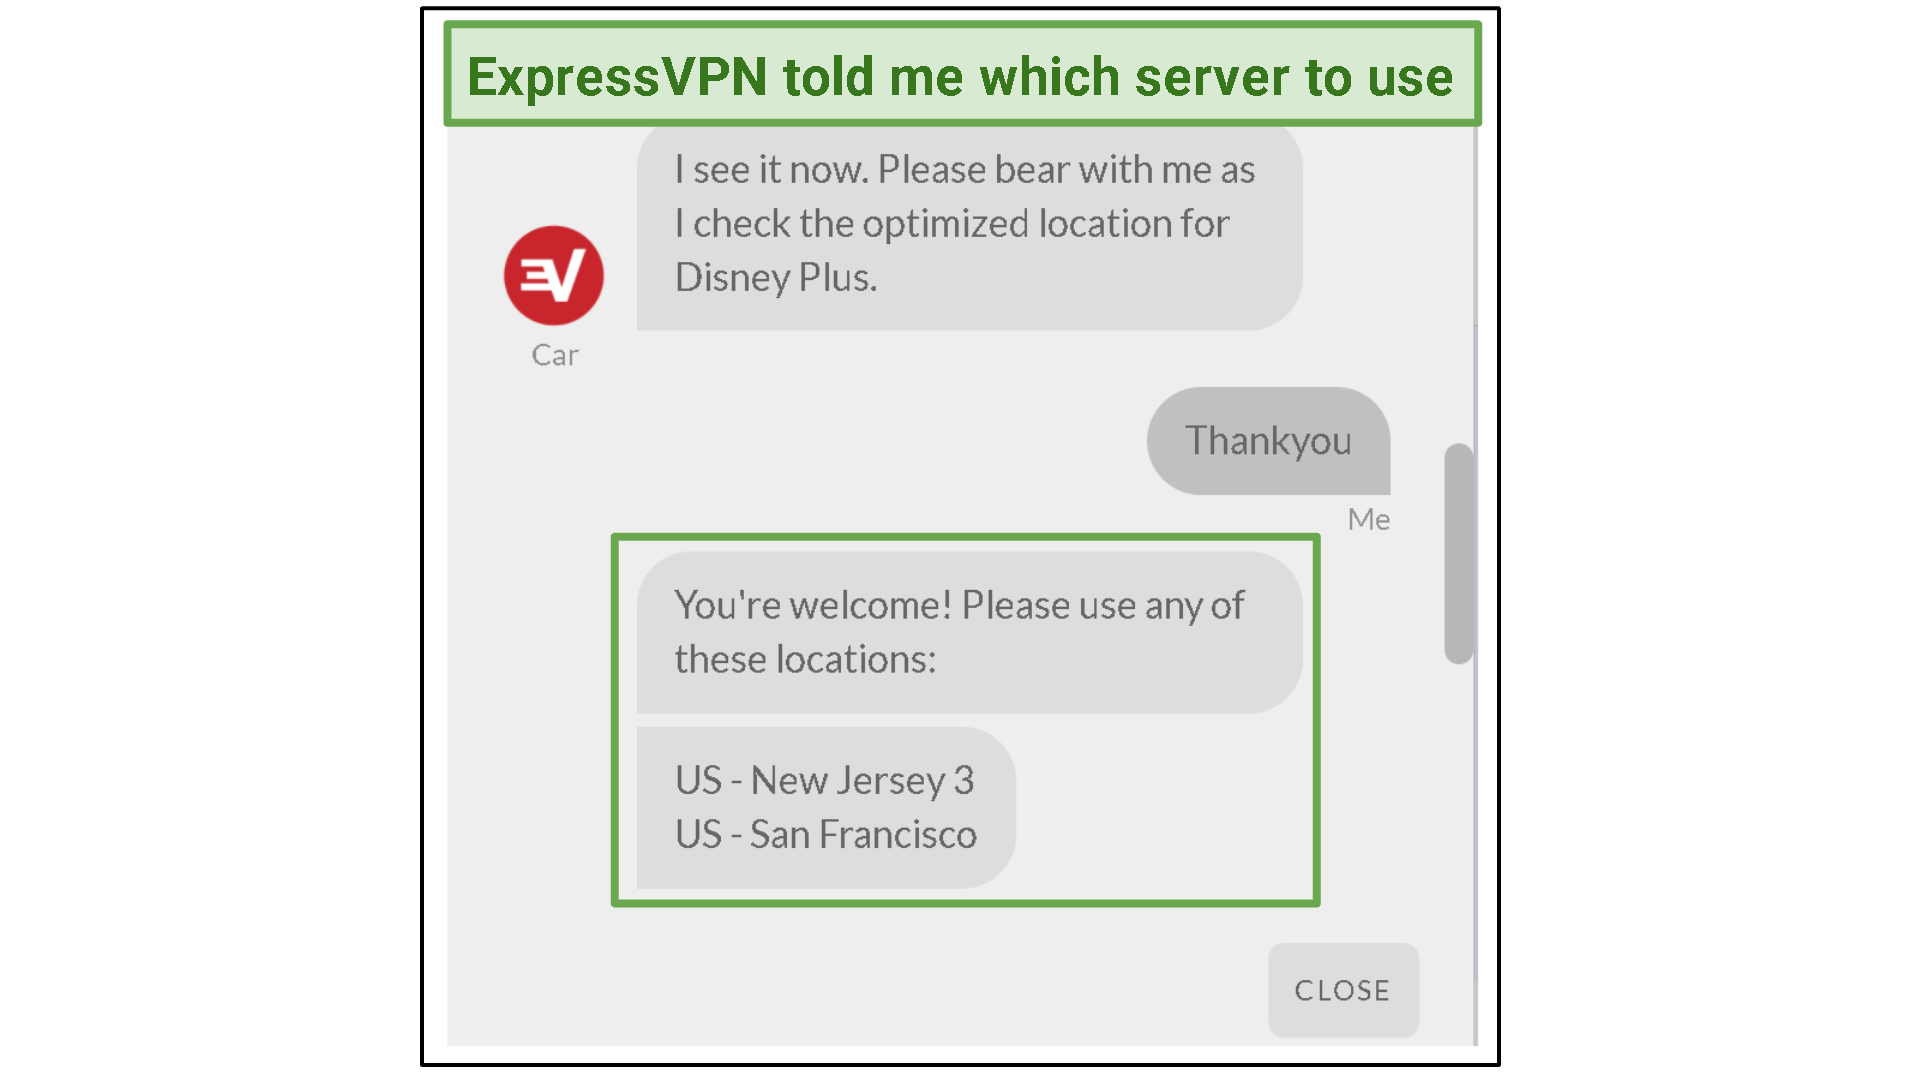 A screenshot of the ExpressVPN live chat window with the representative detailing the best servers for Disney+.